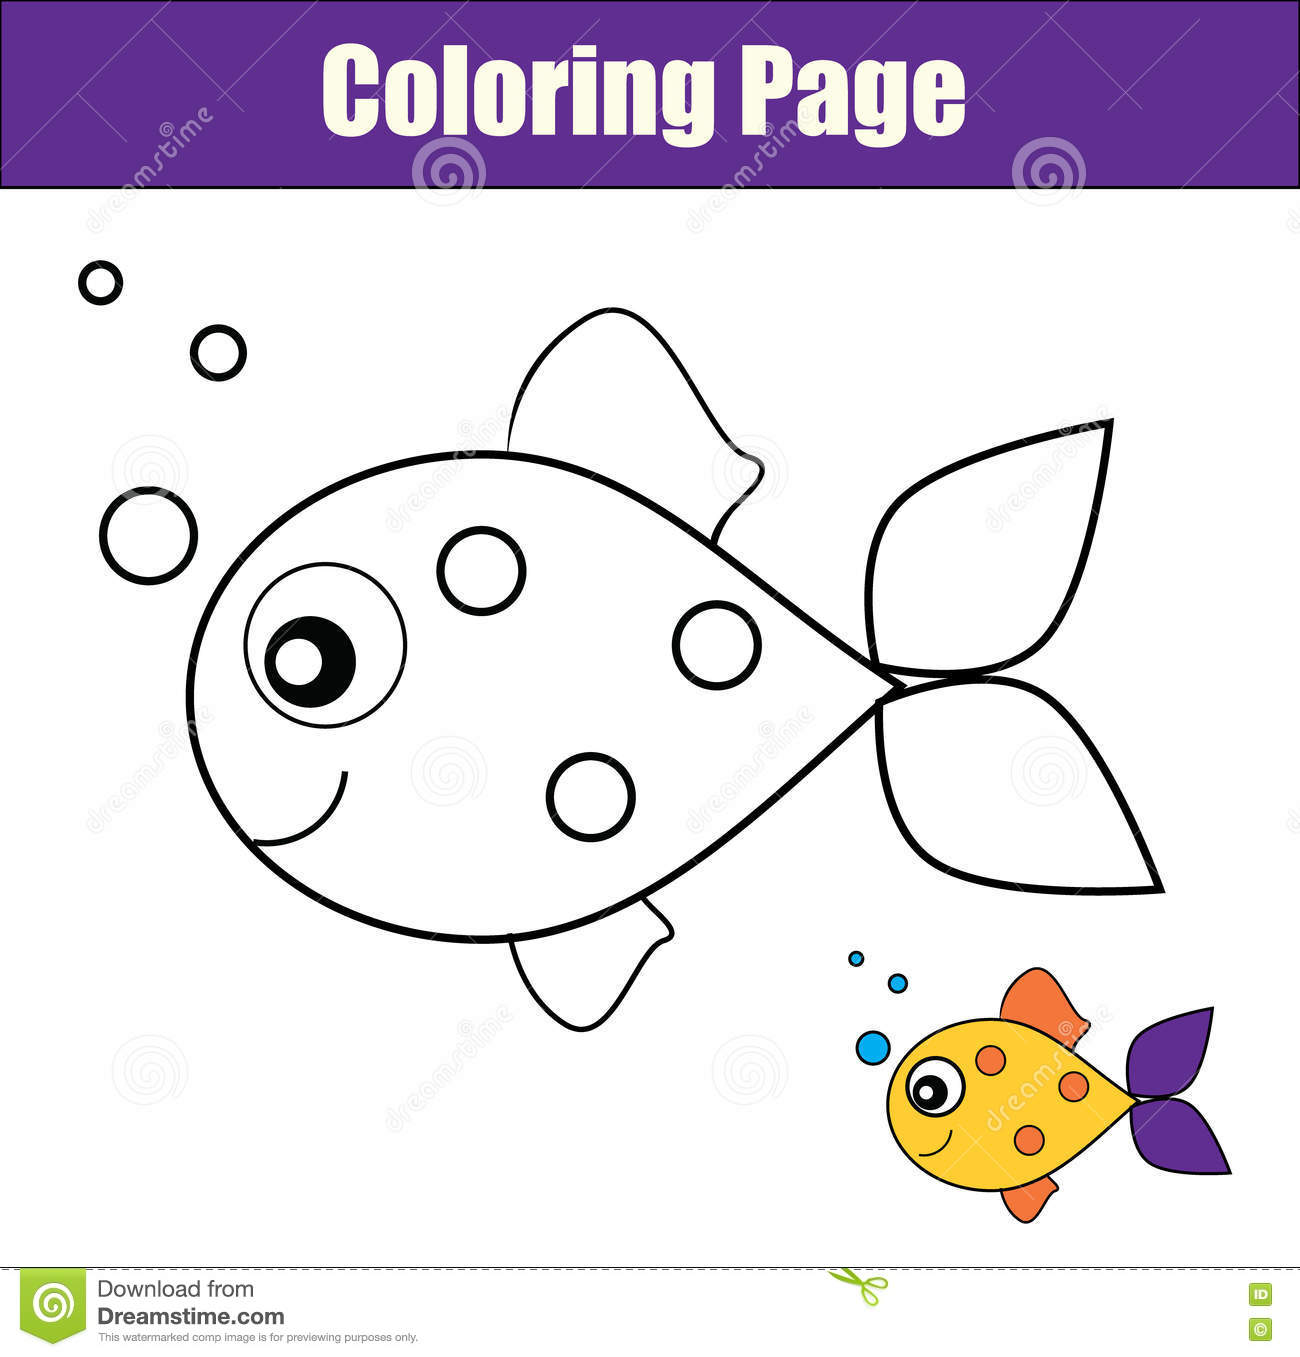 Coloring Page With Fish. Educational Game, Printable Drawing Kids ...